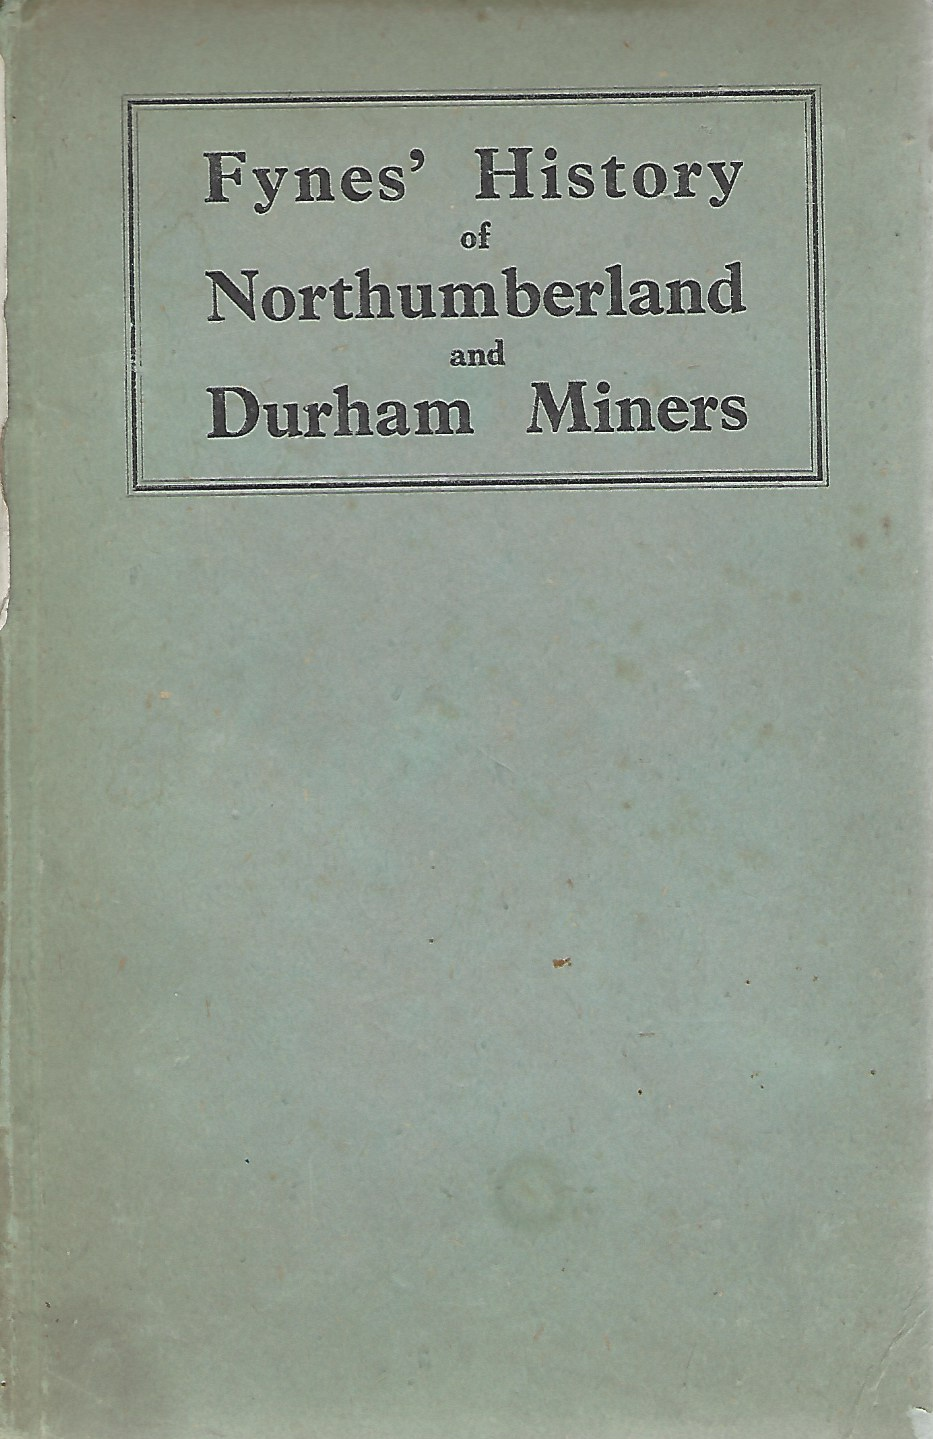 Image for Fynes' History of Northumberland and Durham Miners A history of their social and political progress